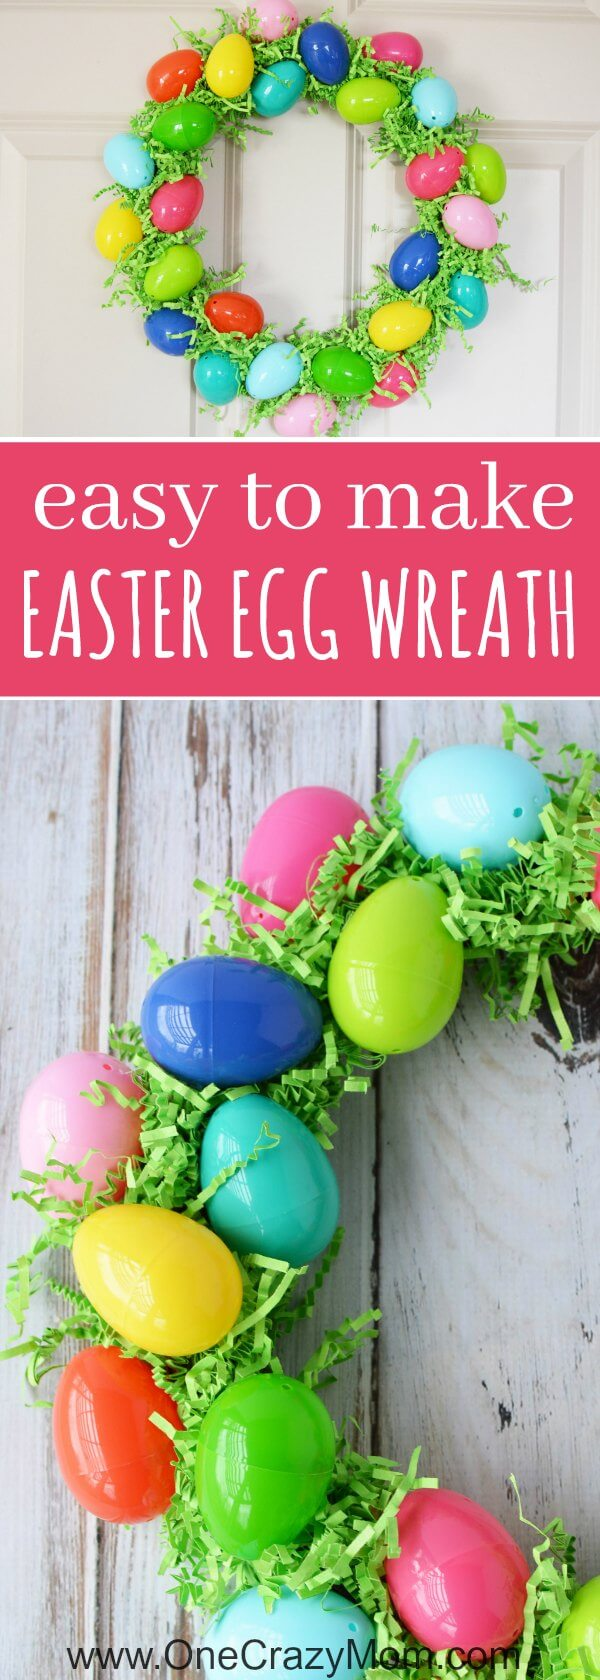 Make this DIY Easter Egg Wreath with items from the dollar store. You will love this easy Easter Egg Wreath DIY. Try this frugal Easter craft today.